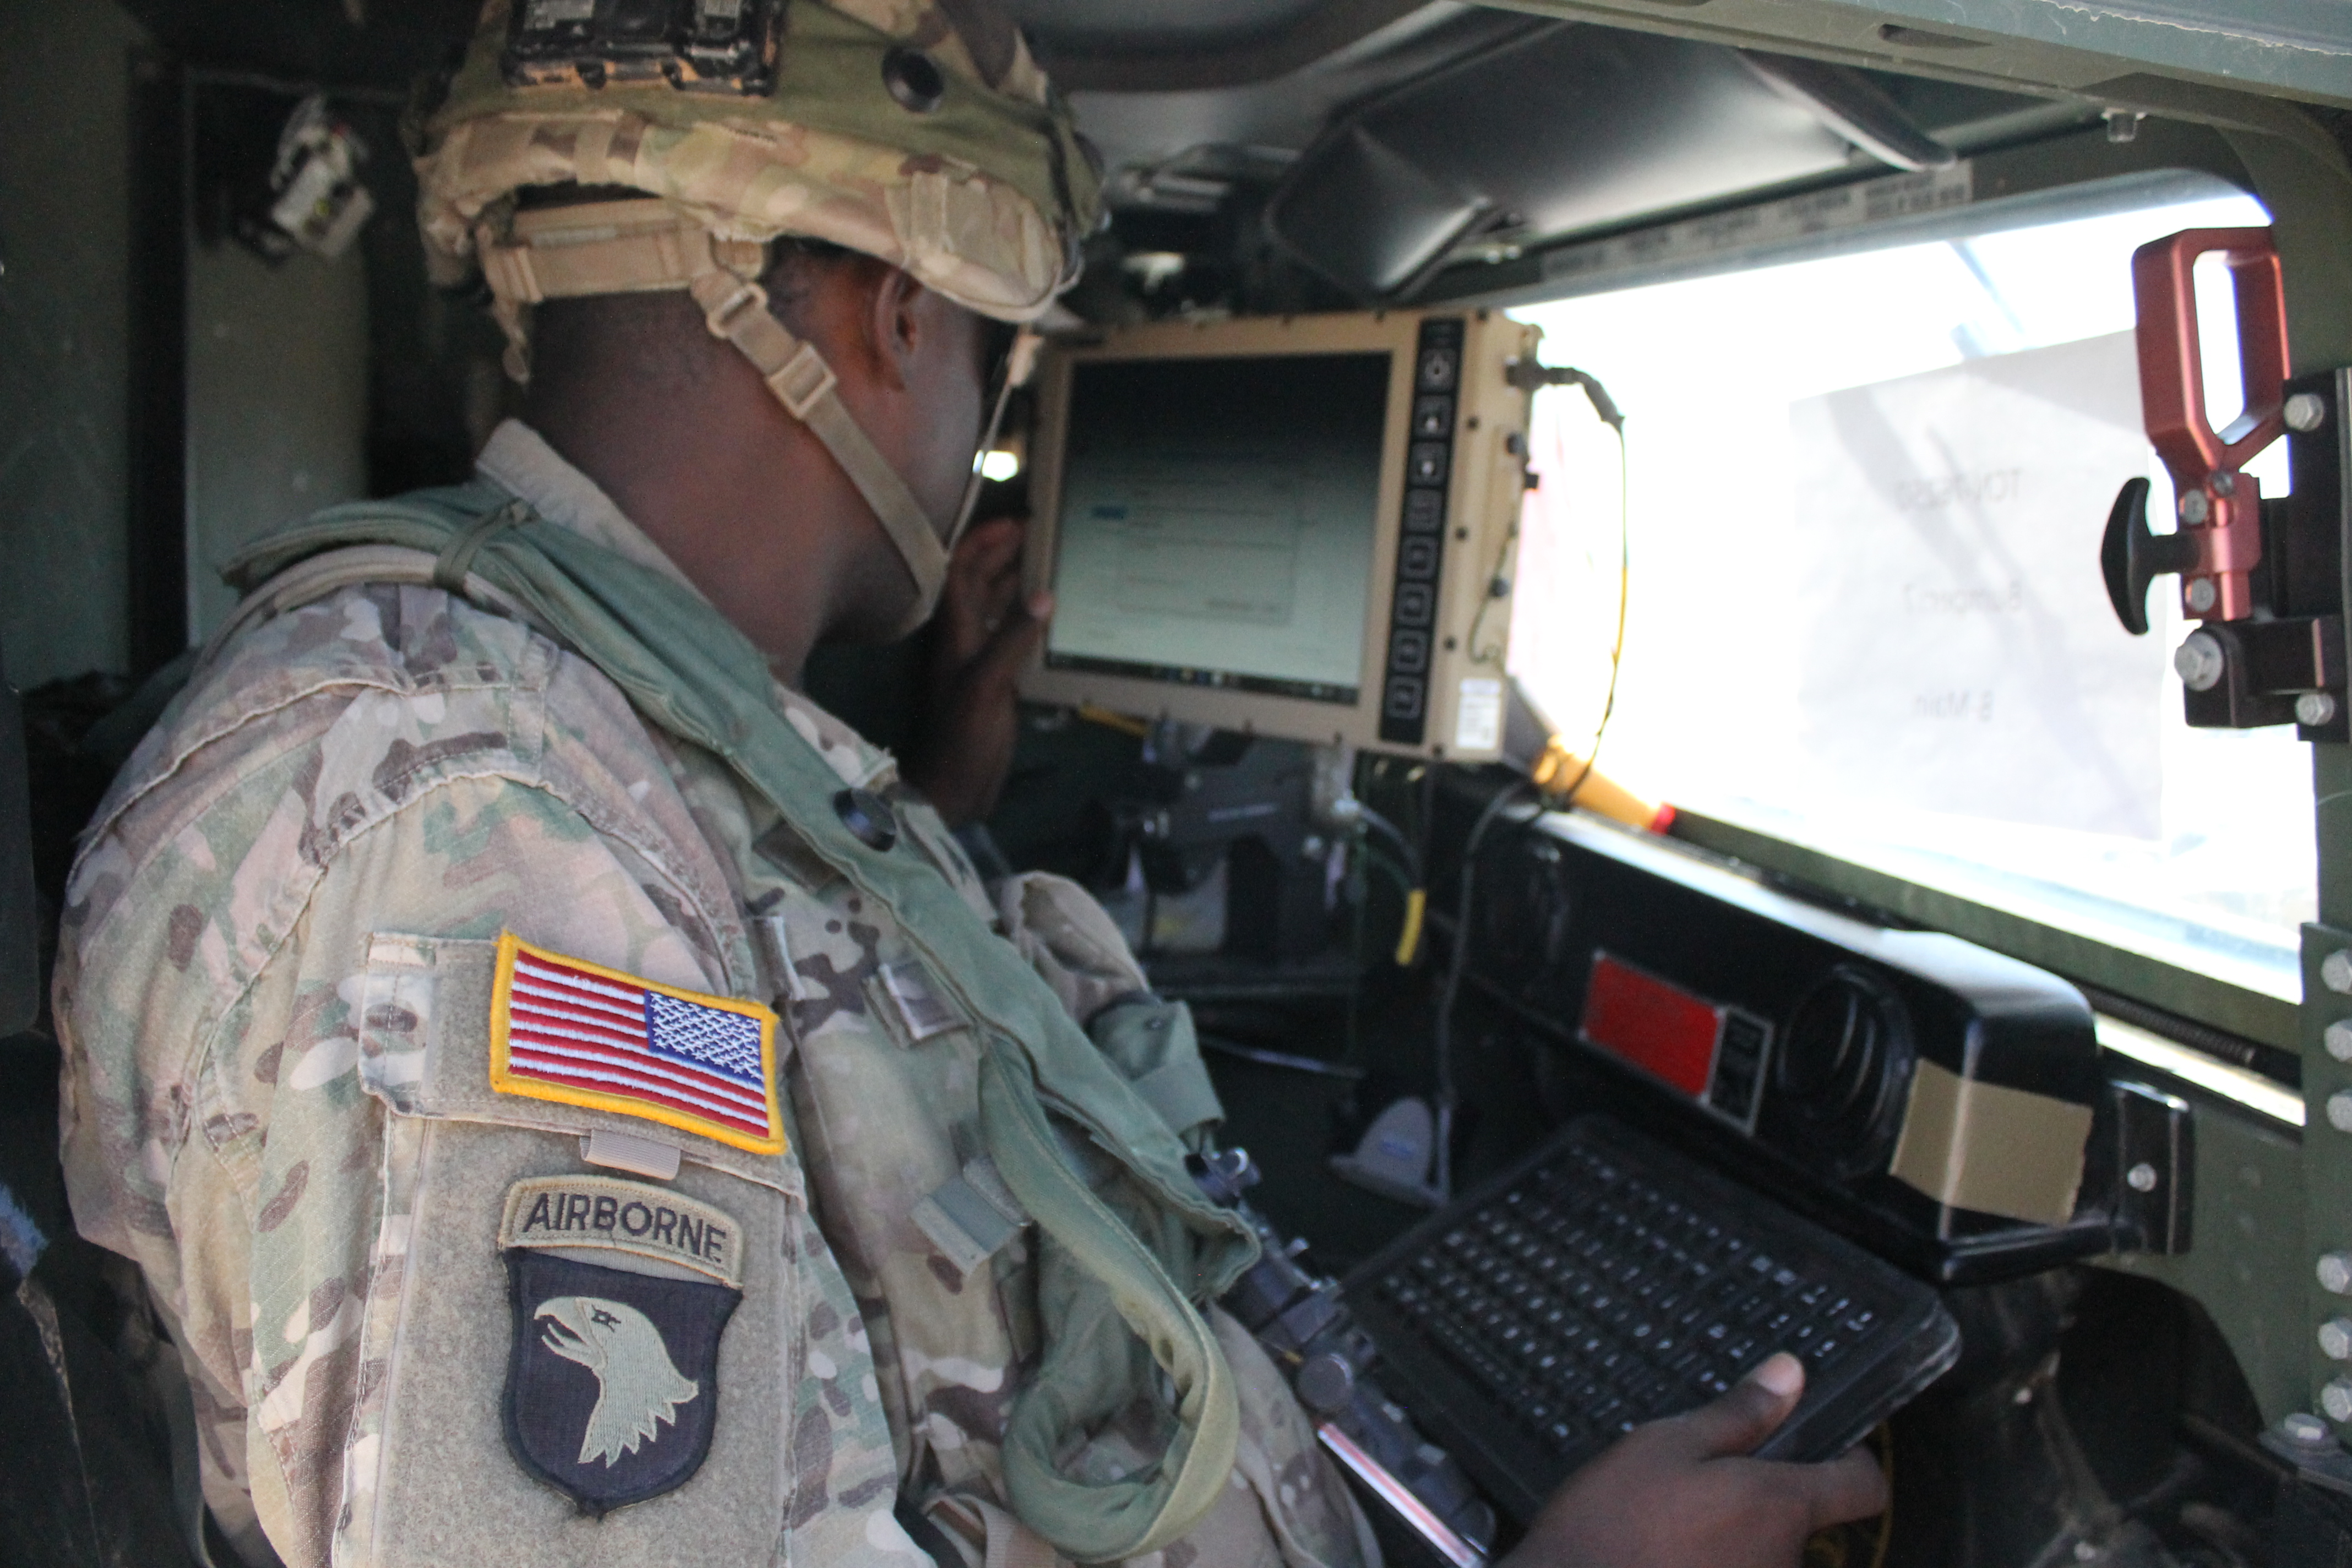 A soldier powers up the TCN-L in the cab of the Humvee. (Jen Judson/Staff)